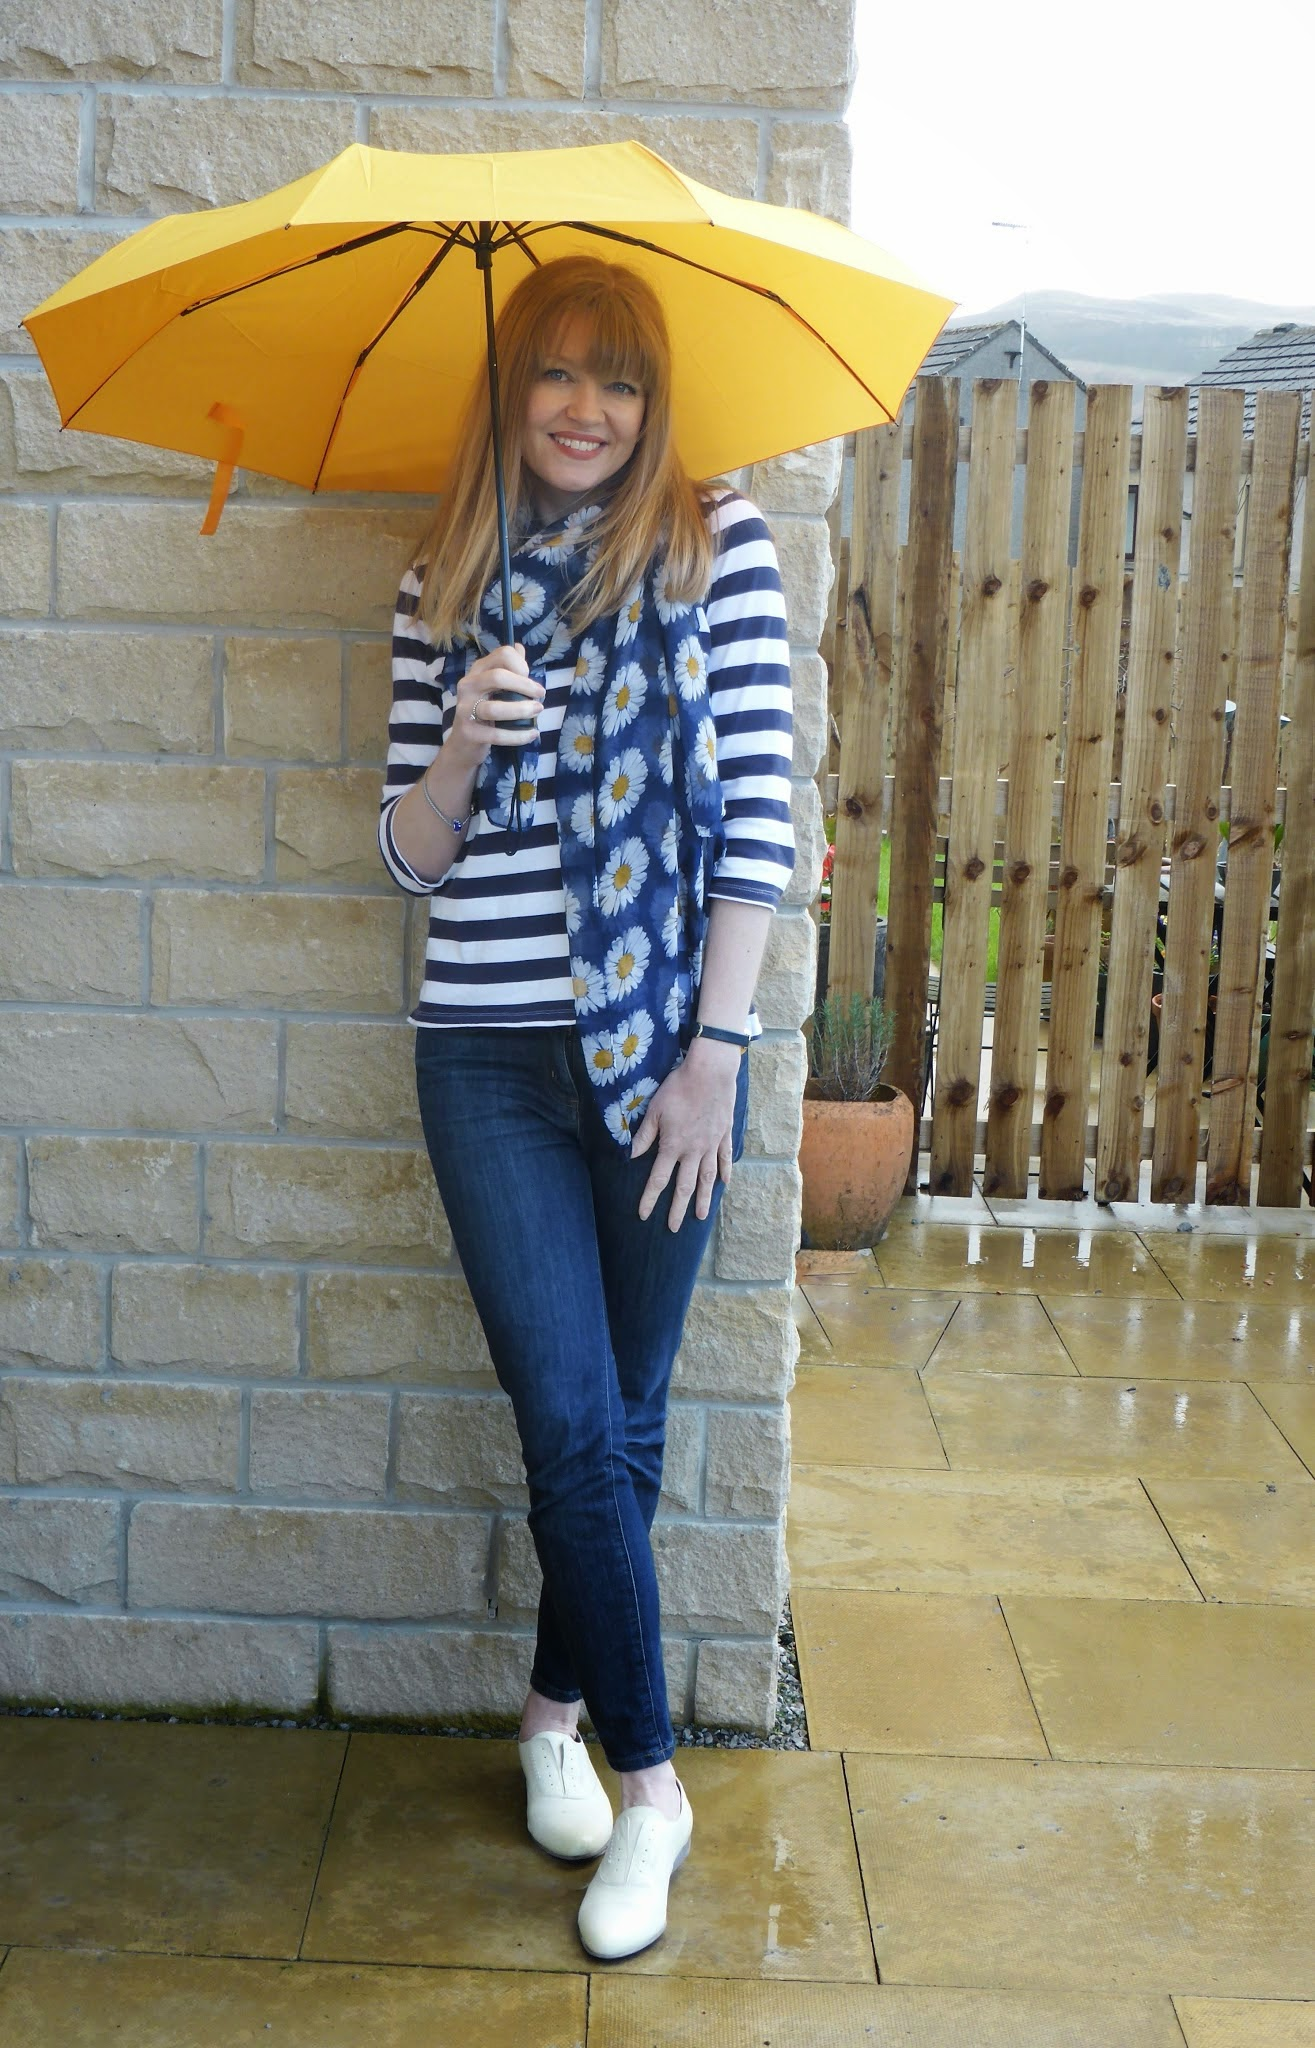 What Lizzy Loves, over 40 fashion blogger wears navy and whiteJack Wills breton striped top, skinny jeans, blue daisy scarf, yellow brogues and yellow umbrella